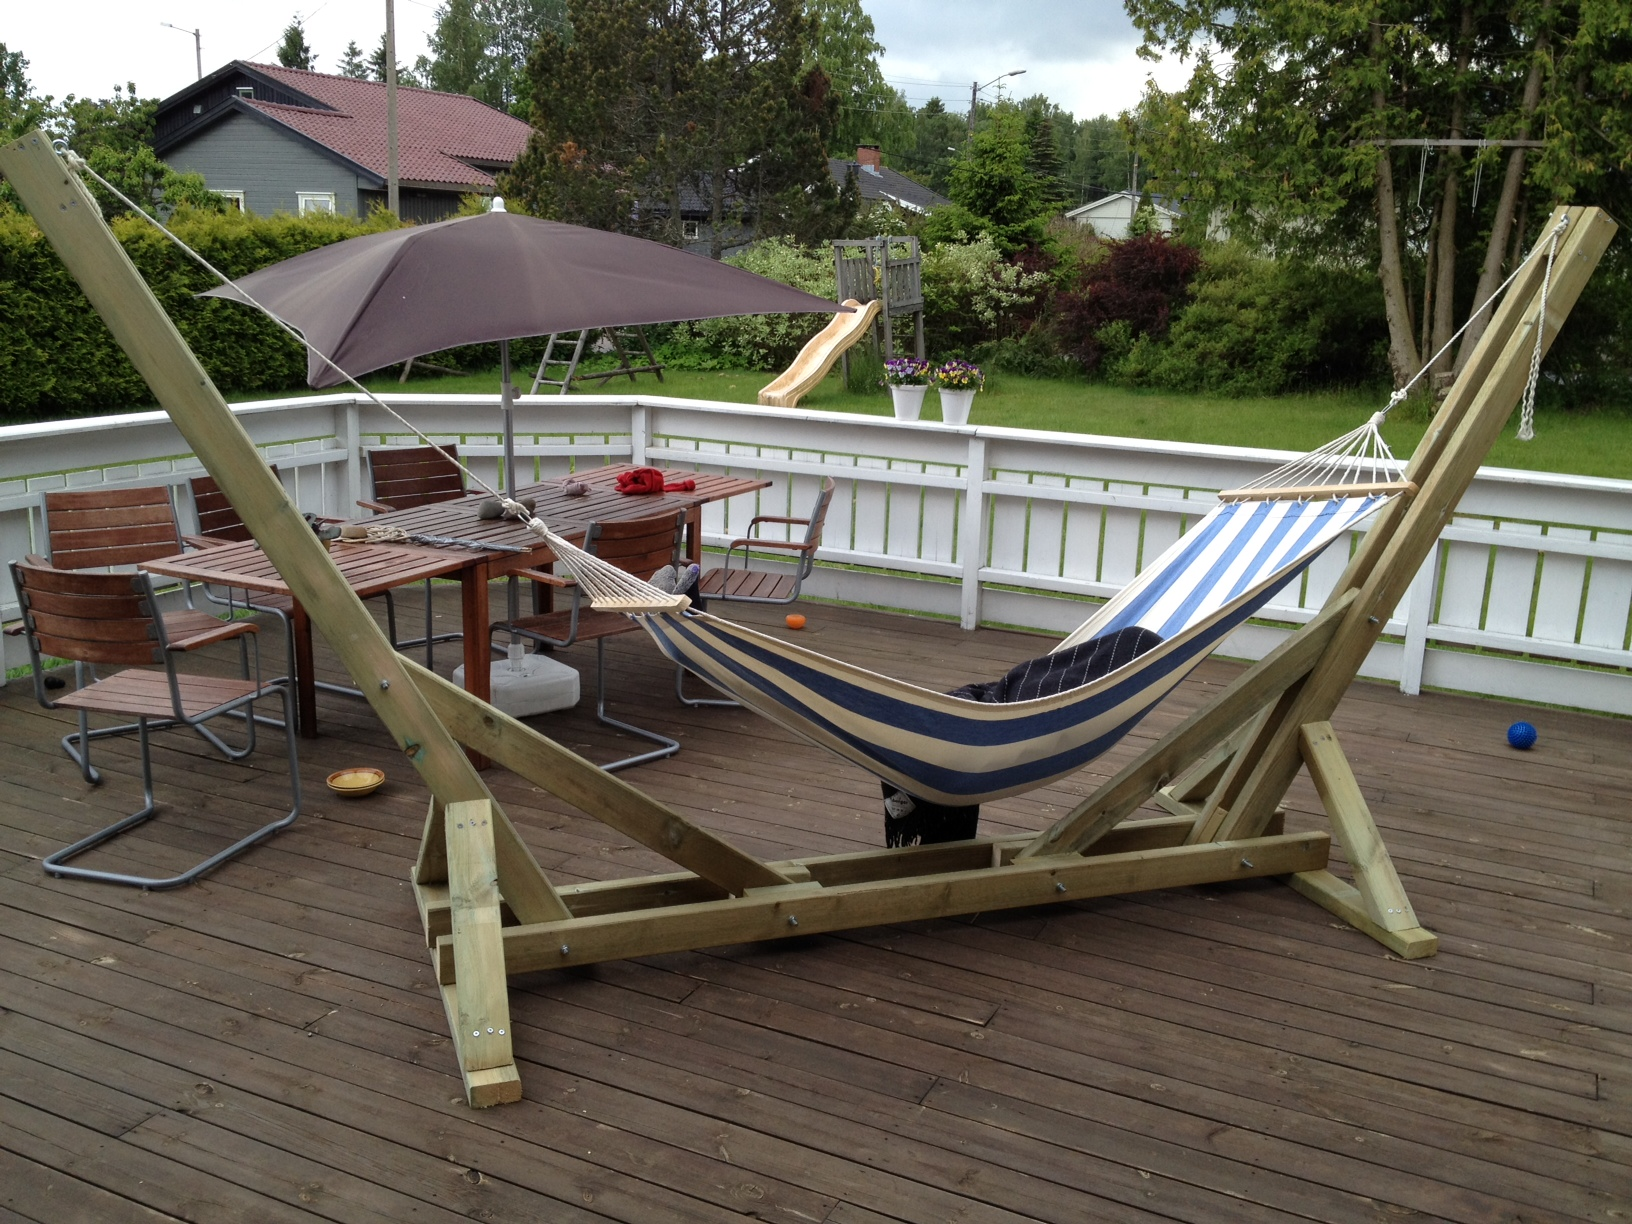 Woodworking wooden hammock stand diy PDF Free Download